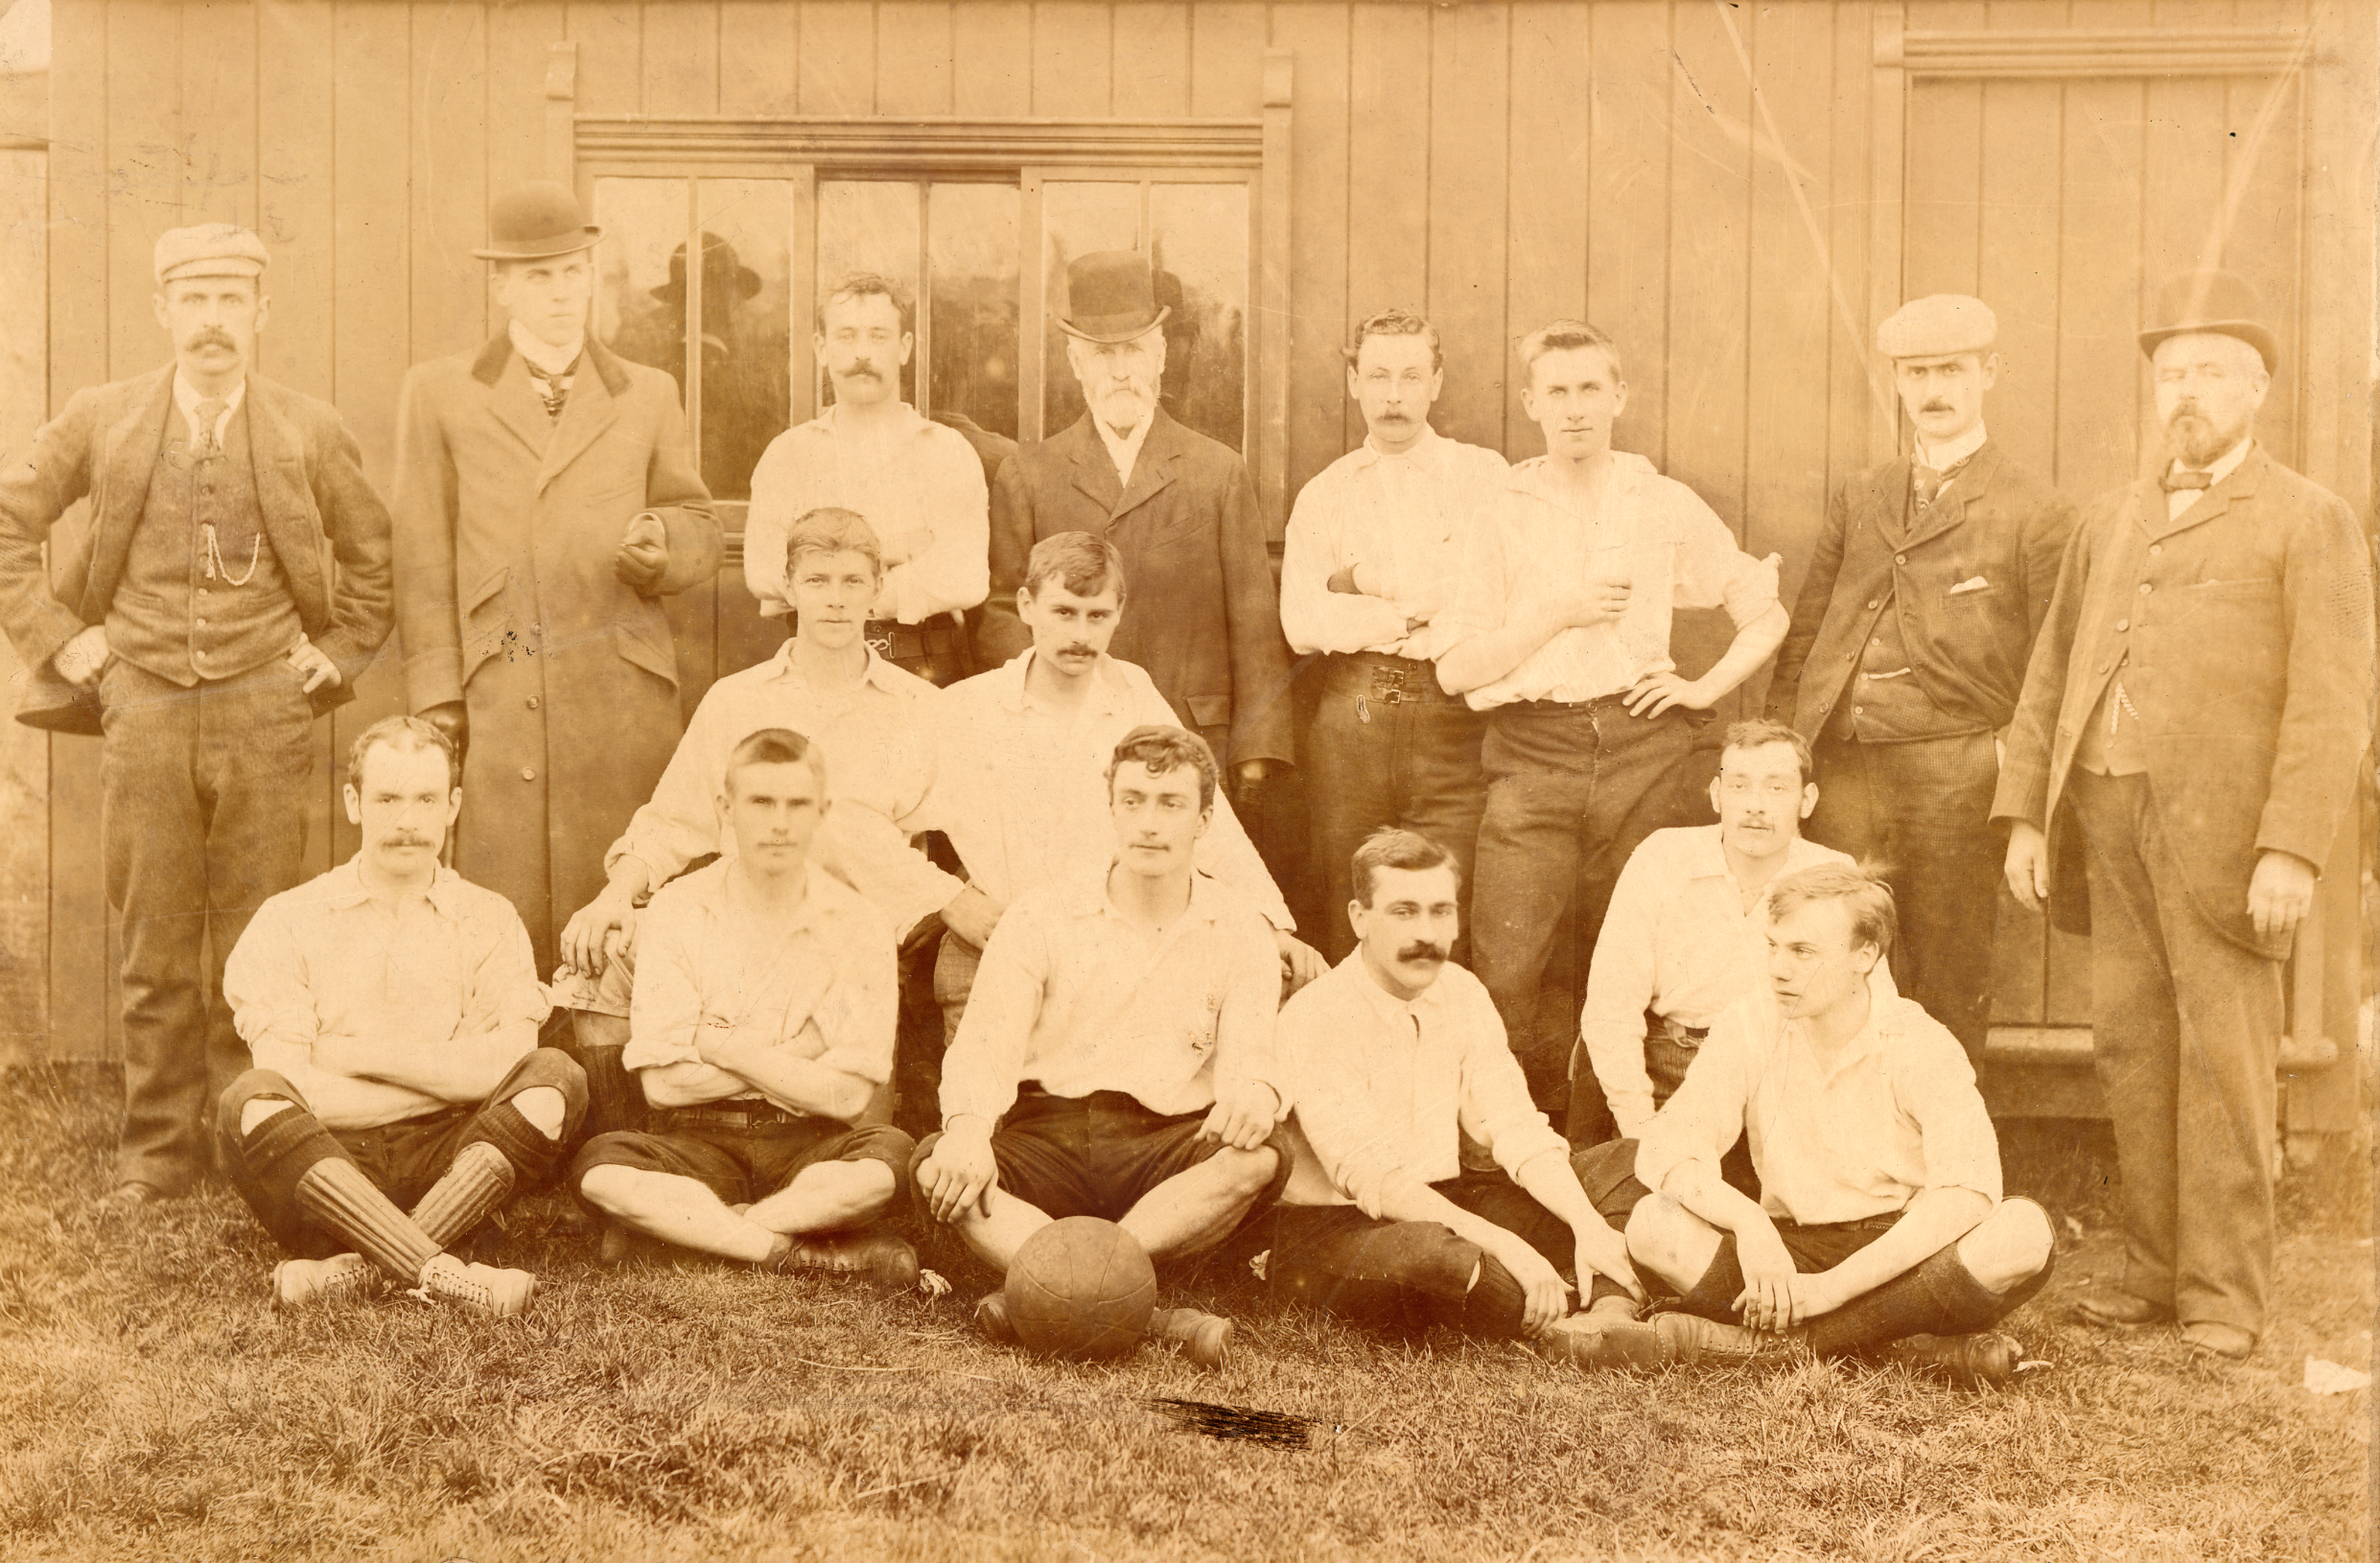 Unknown Team said to be around 1899